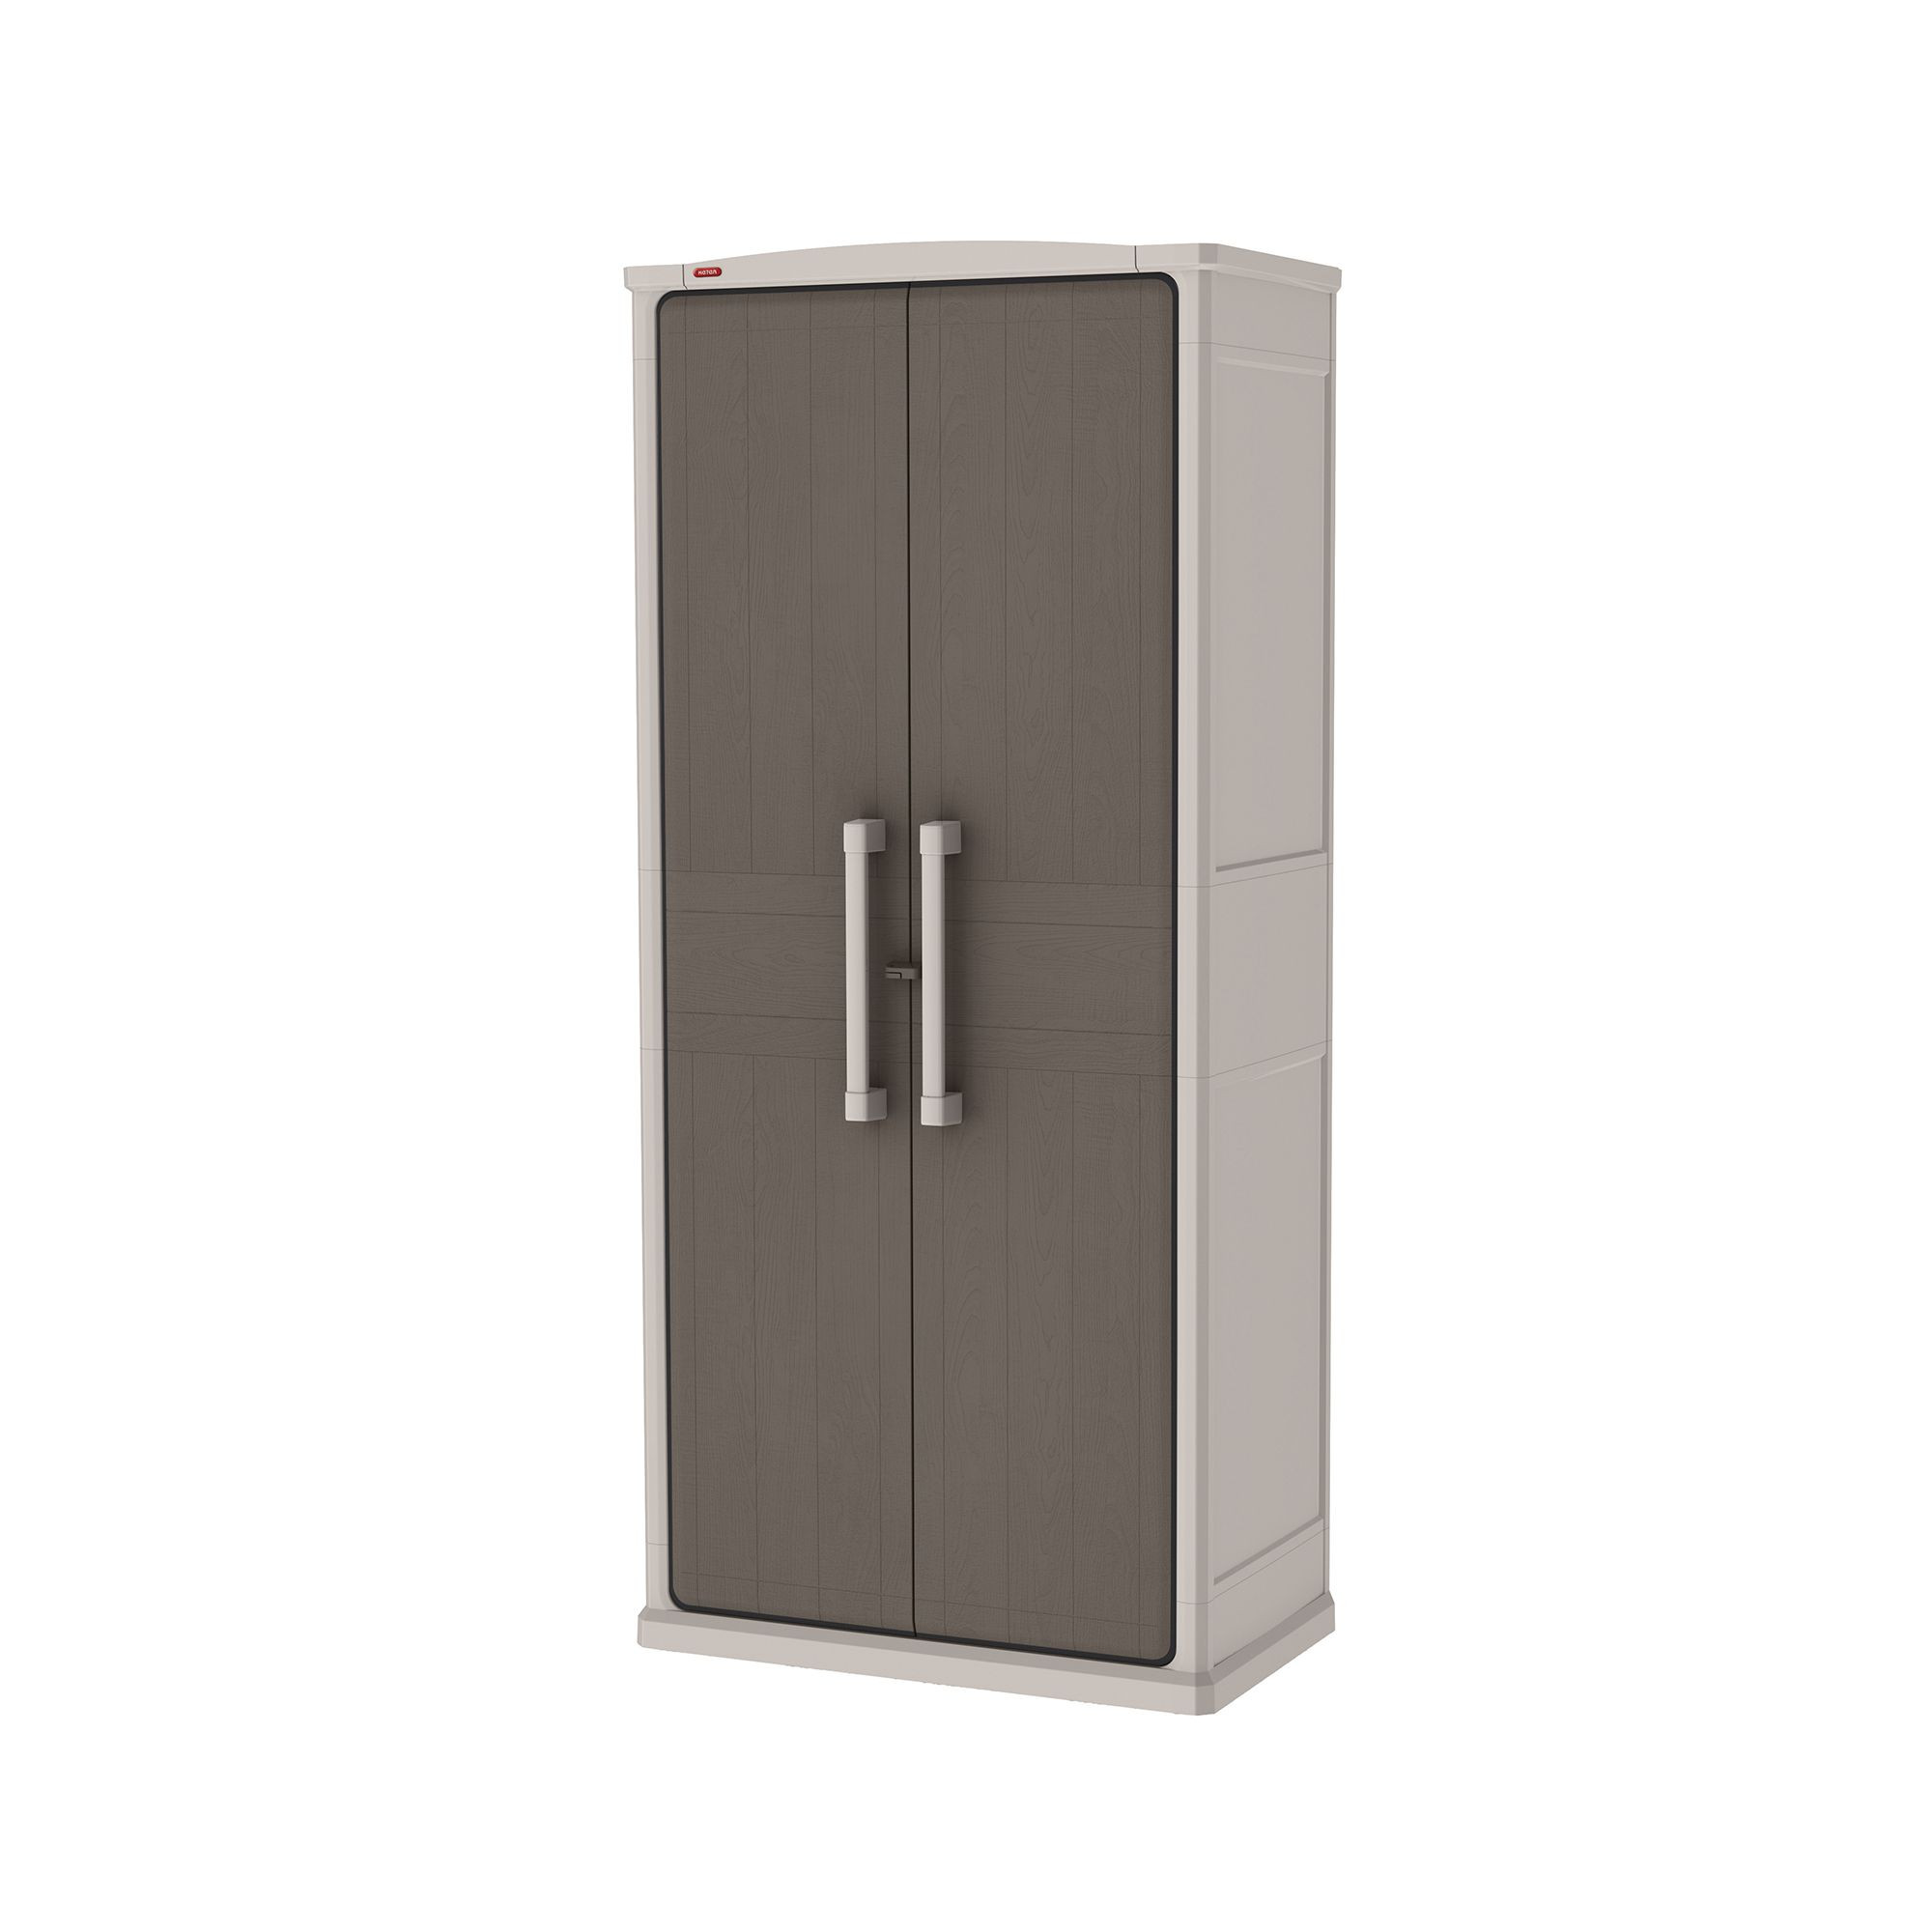 Best ideas about Resin Storage Cabinet . Save or Pin Optima Resin Plastic Garden Storage Cabinet Now.